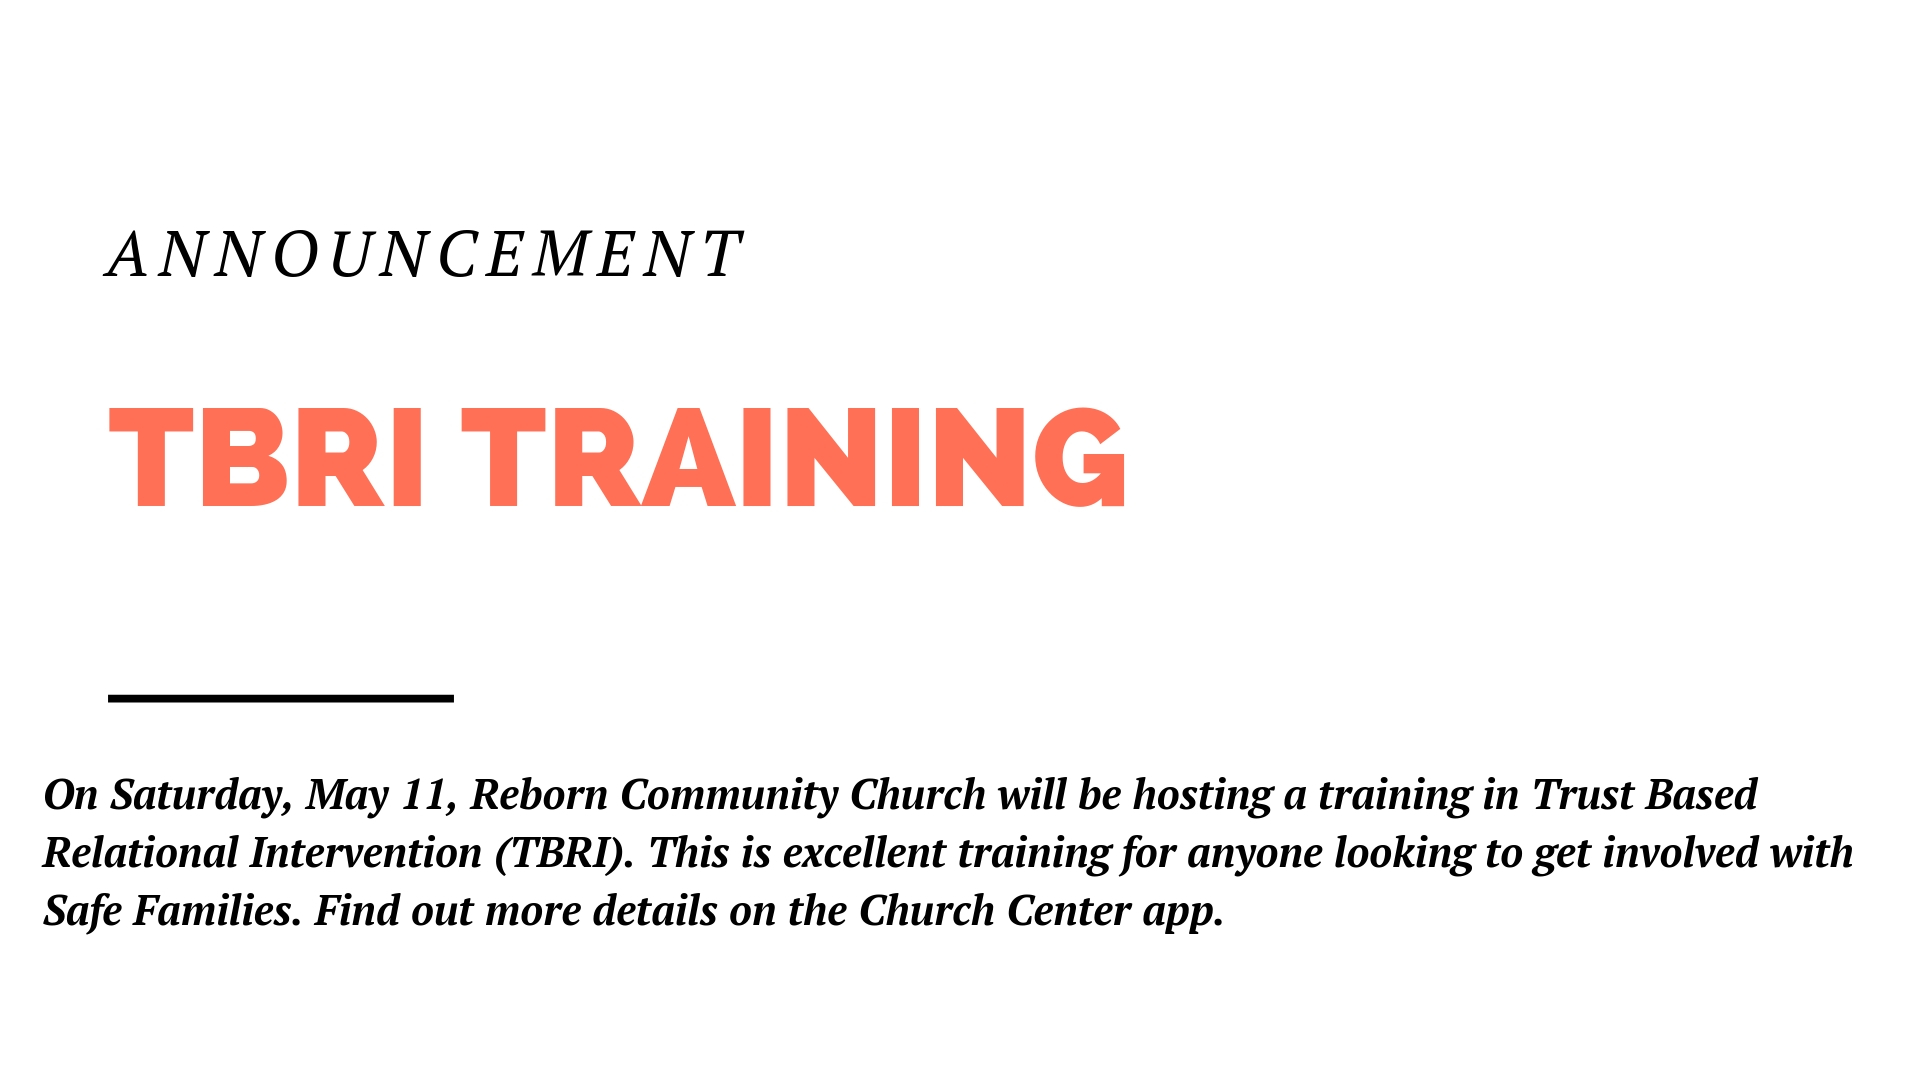 For anyone interested in getting more involved with Safe Families, we're going to be holding a training on Saturday May 11 at Reborn Community Church.